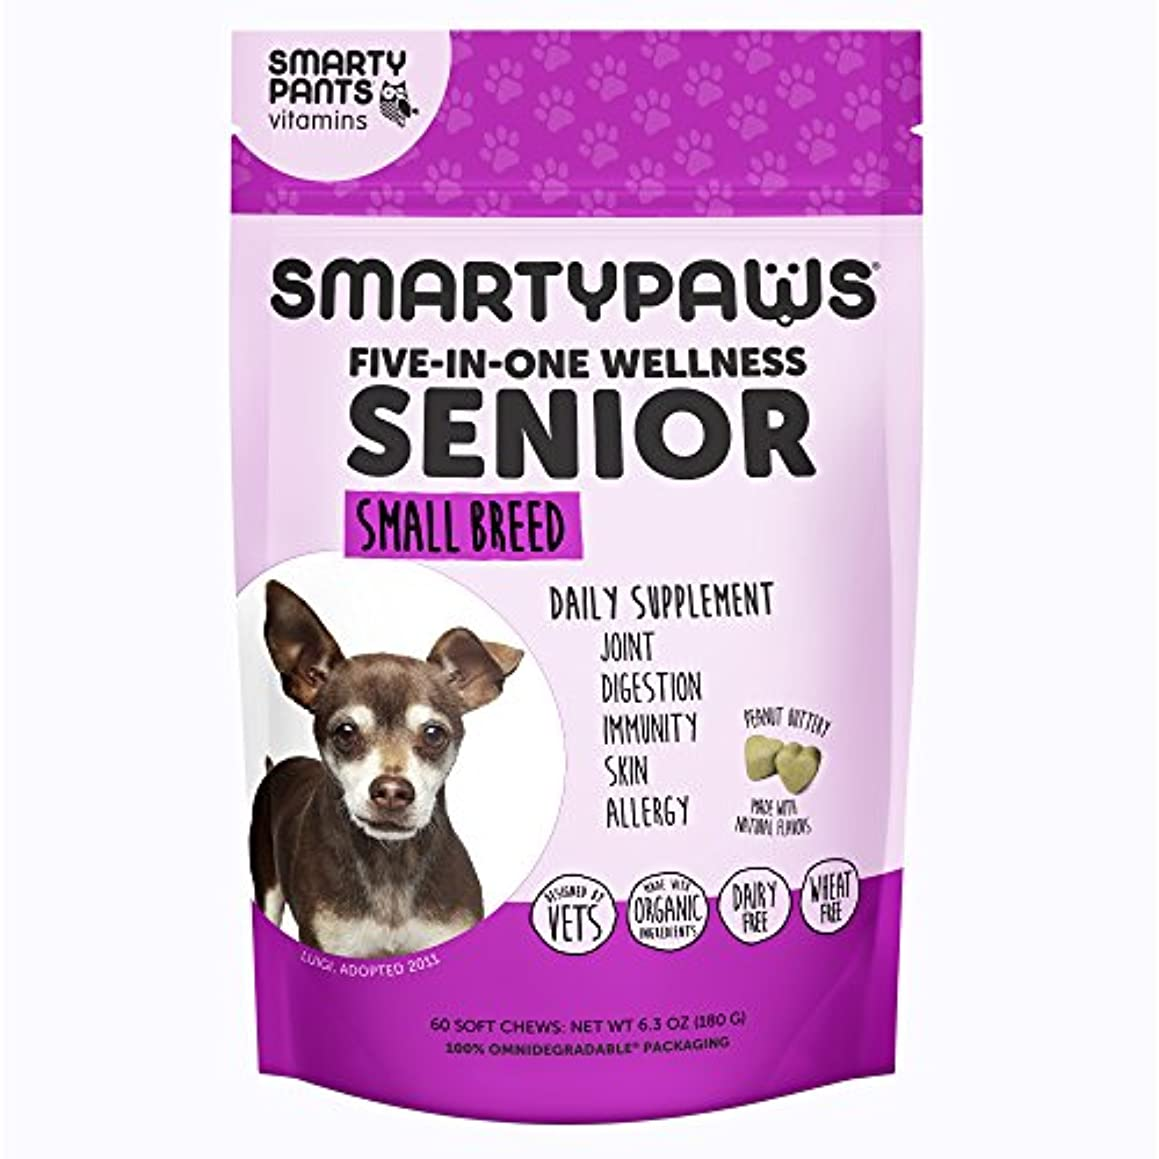 SmartyPaws Multifunctional Dog Supplement Chew: Fish Oil Omega 3 (EPA & DHA) for Skin & Coat, MSM for Joint Support, Digestive Probiotics for Immunity, Turmeric for Allergy Support - 60 Count